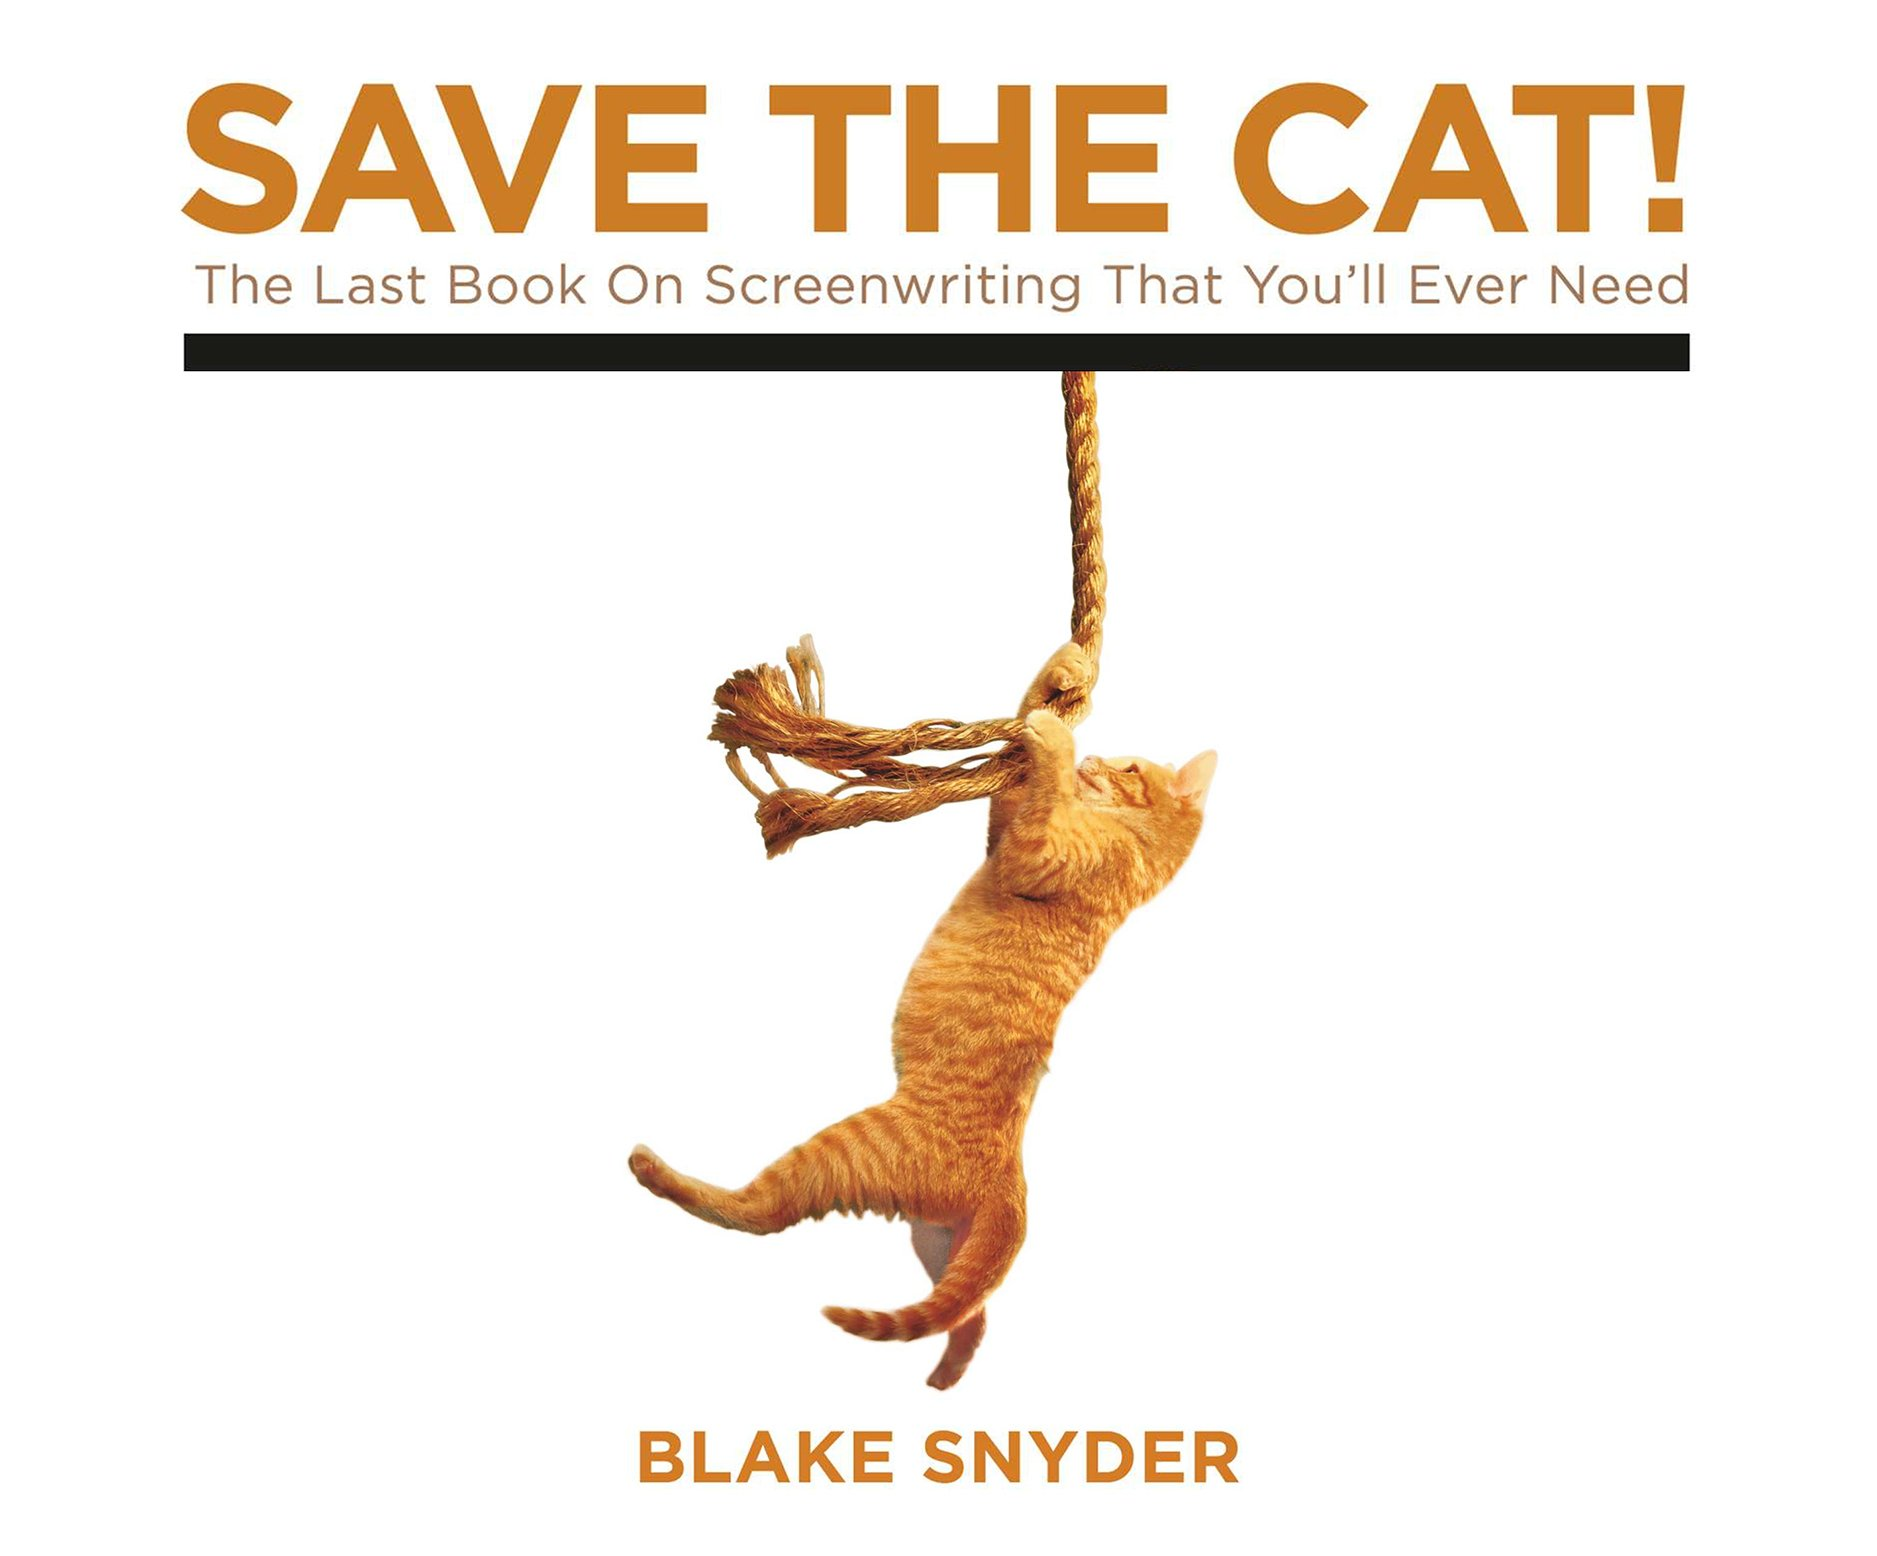 Save the Cat: The Last Book on Screenwriting Youll Ever Need